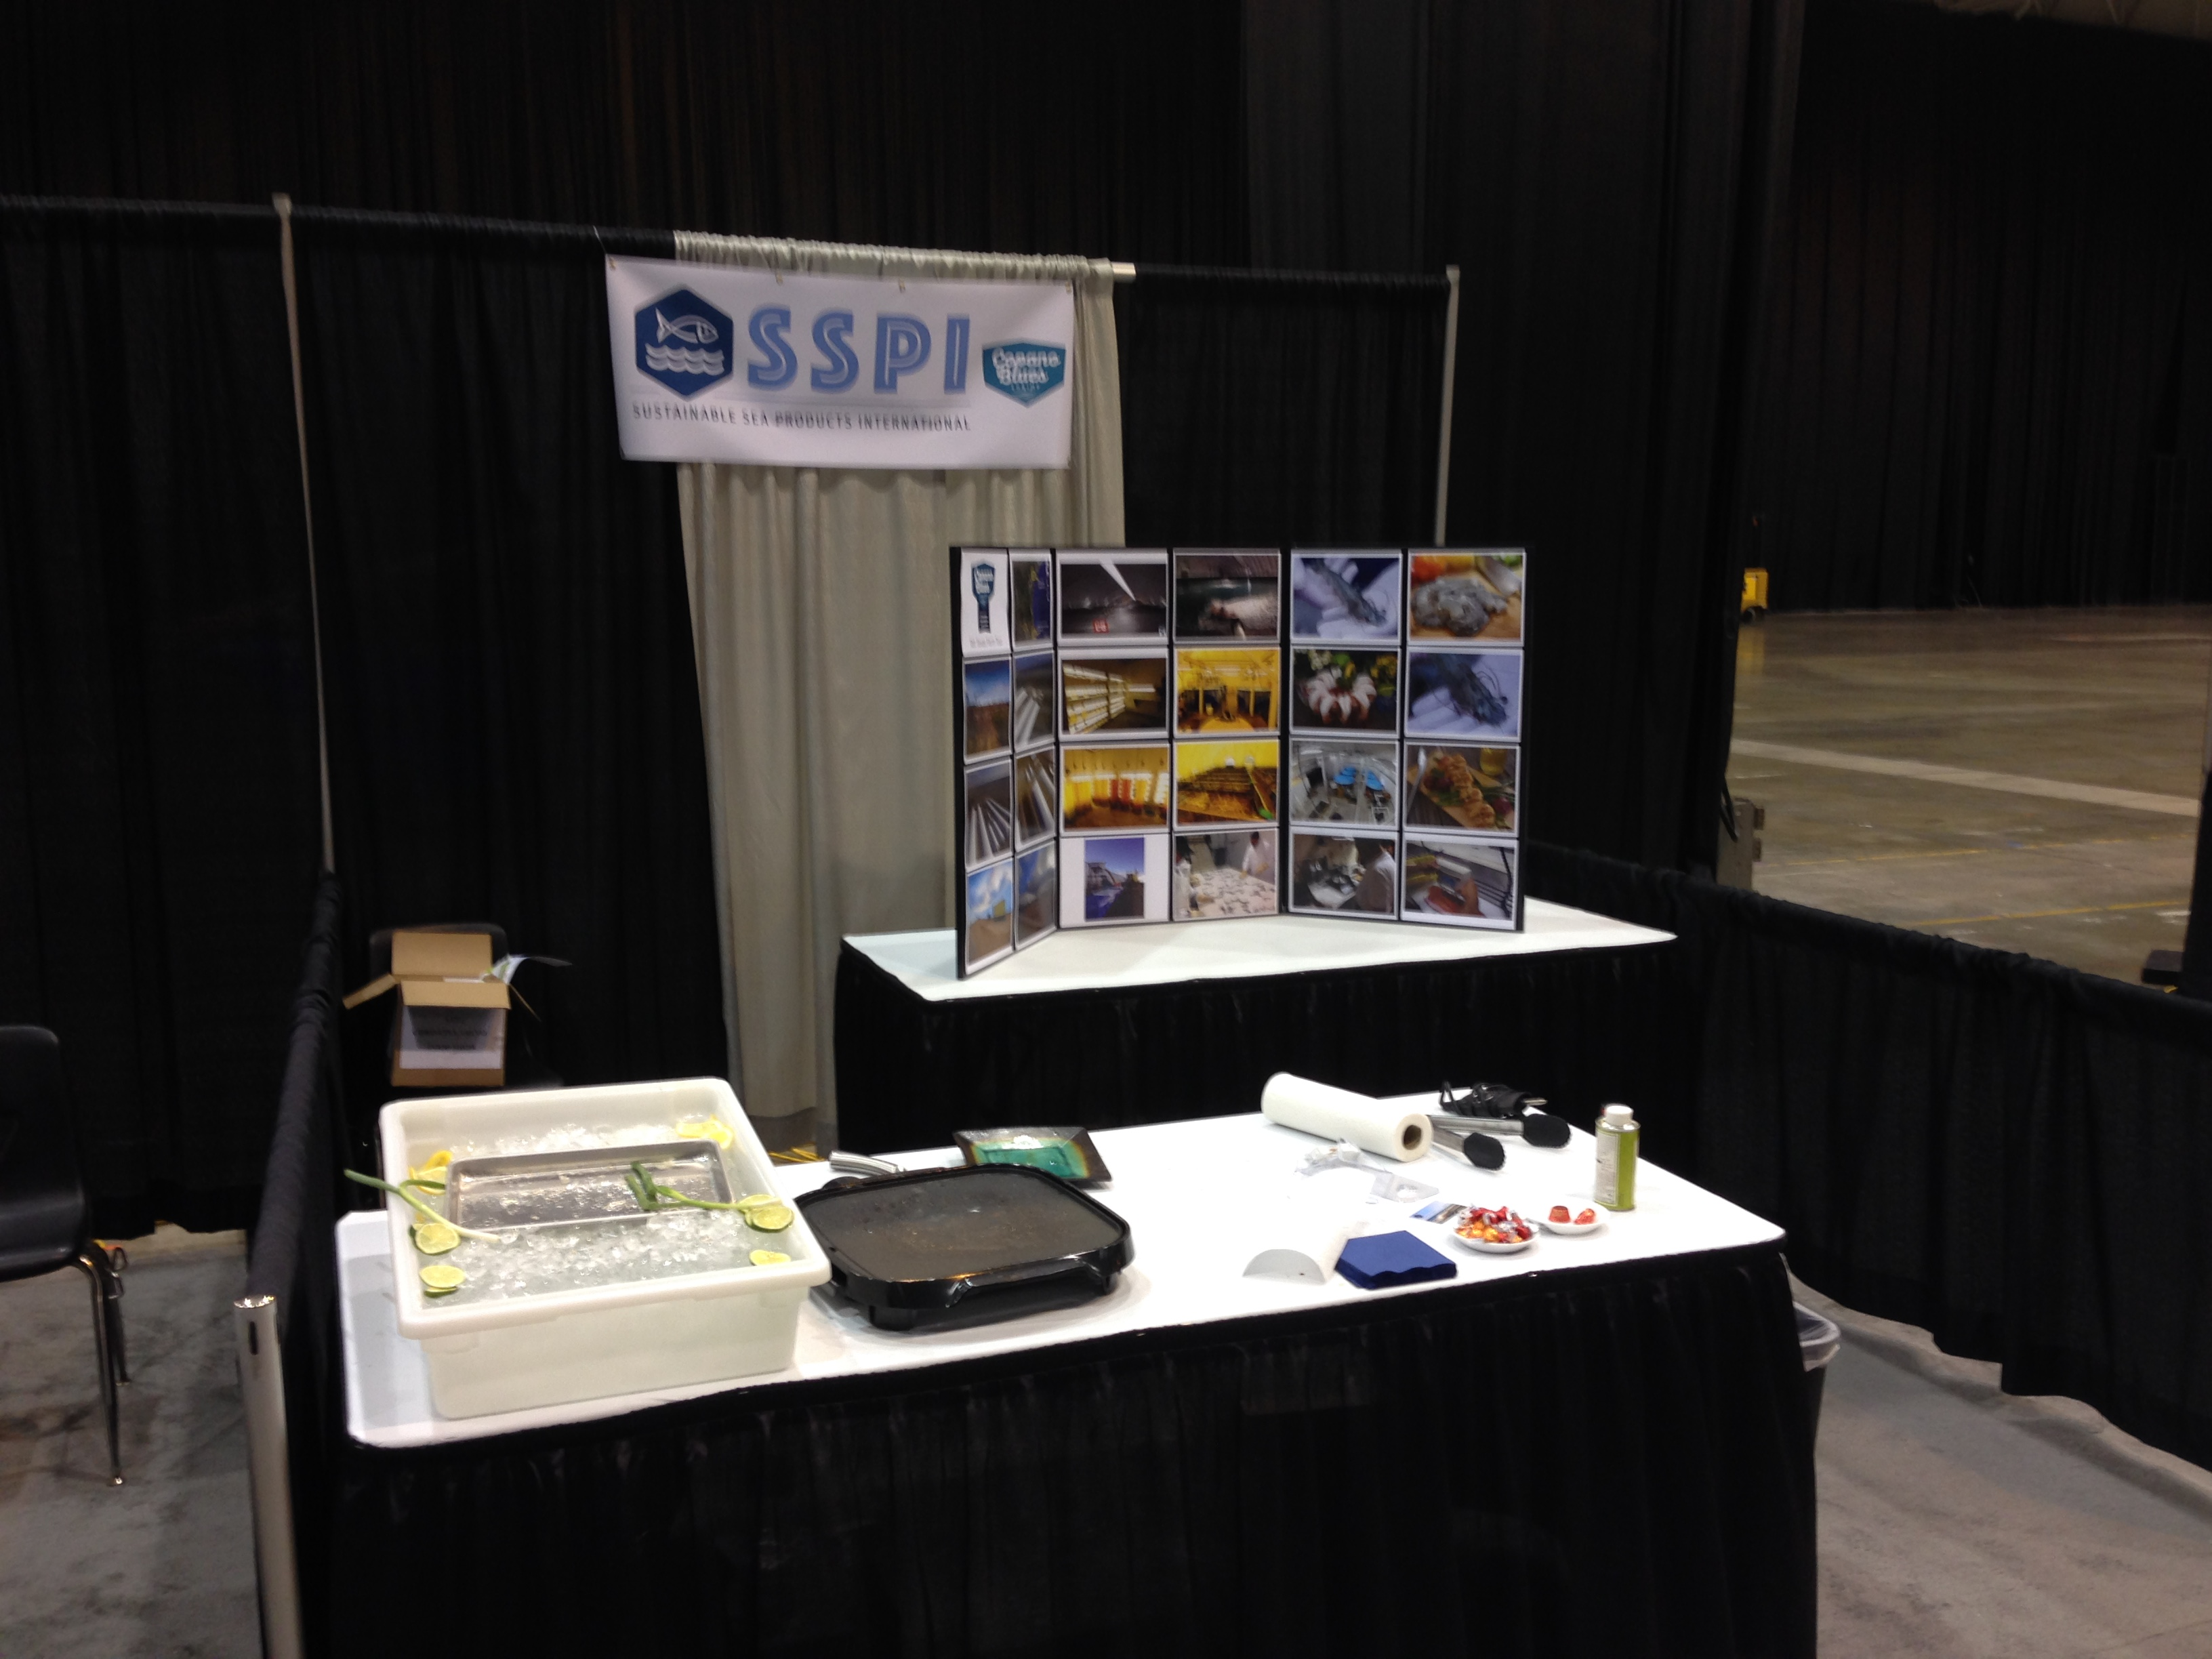 SSPI Wows Attendees at Euro USA Food Show